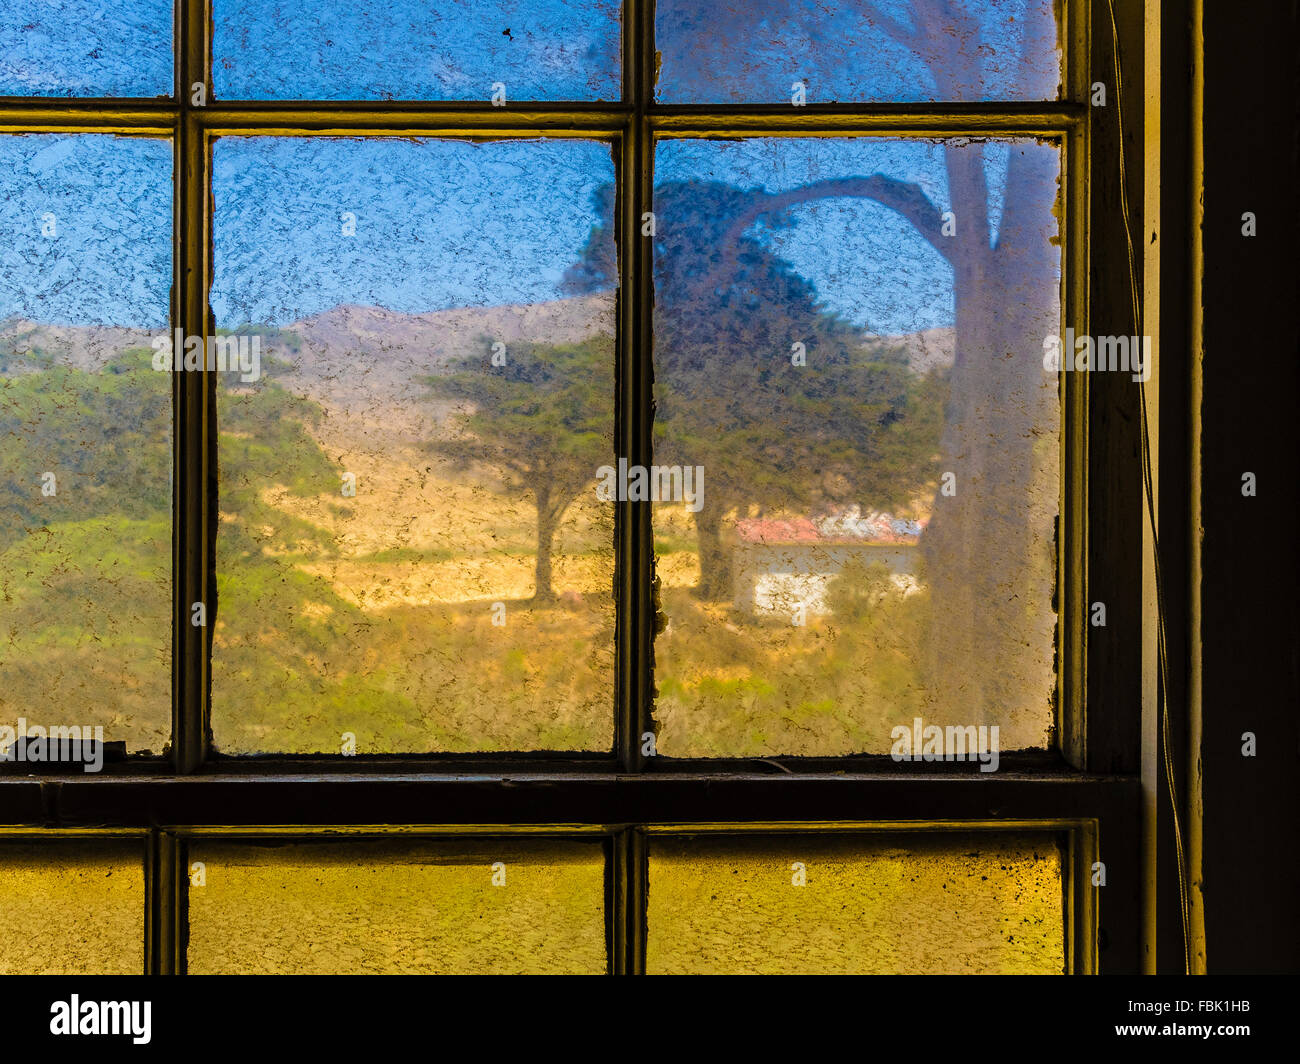 A landscape view of trees and hills looking out of dirty window panes. - Stock Image